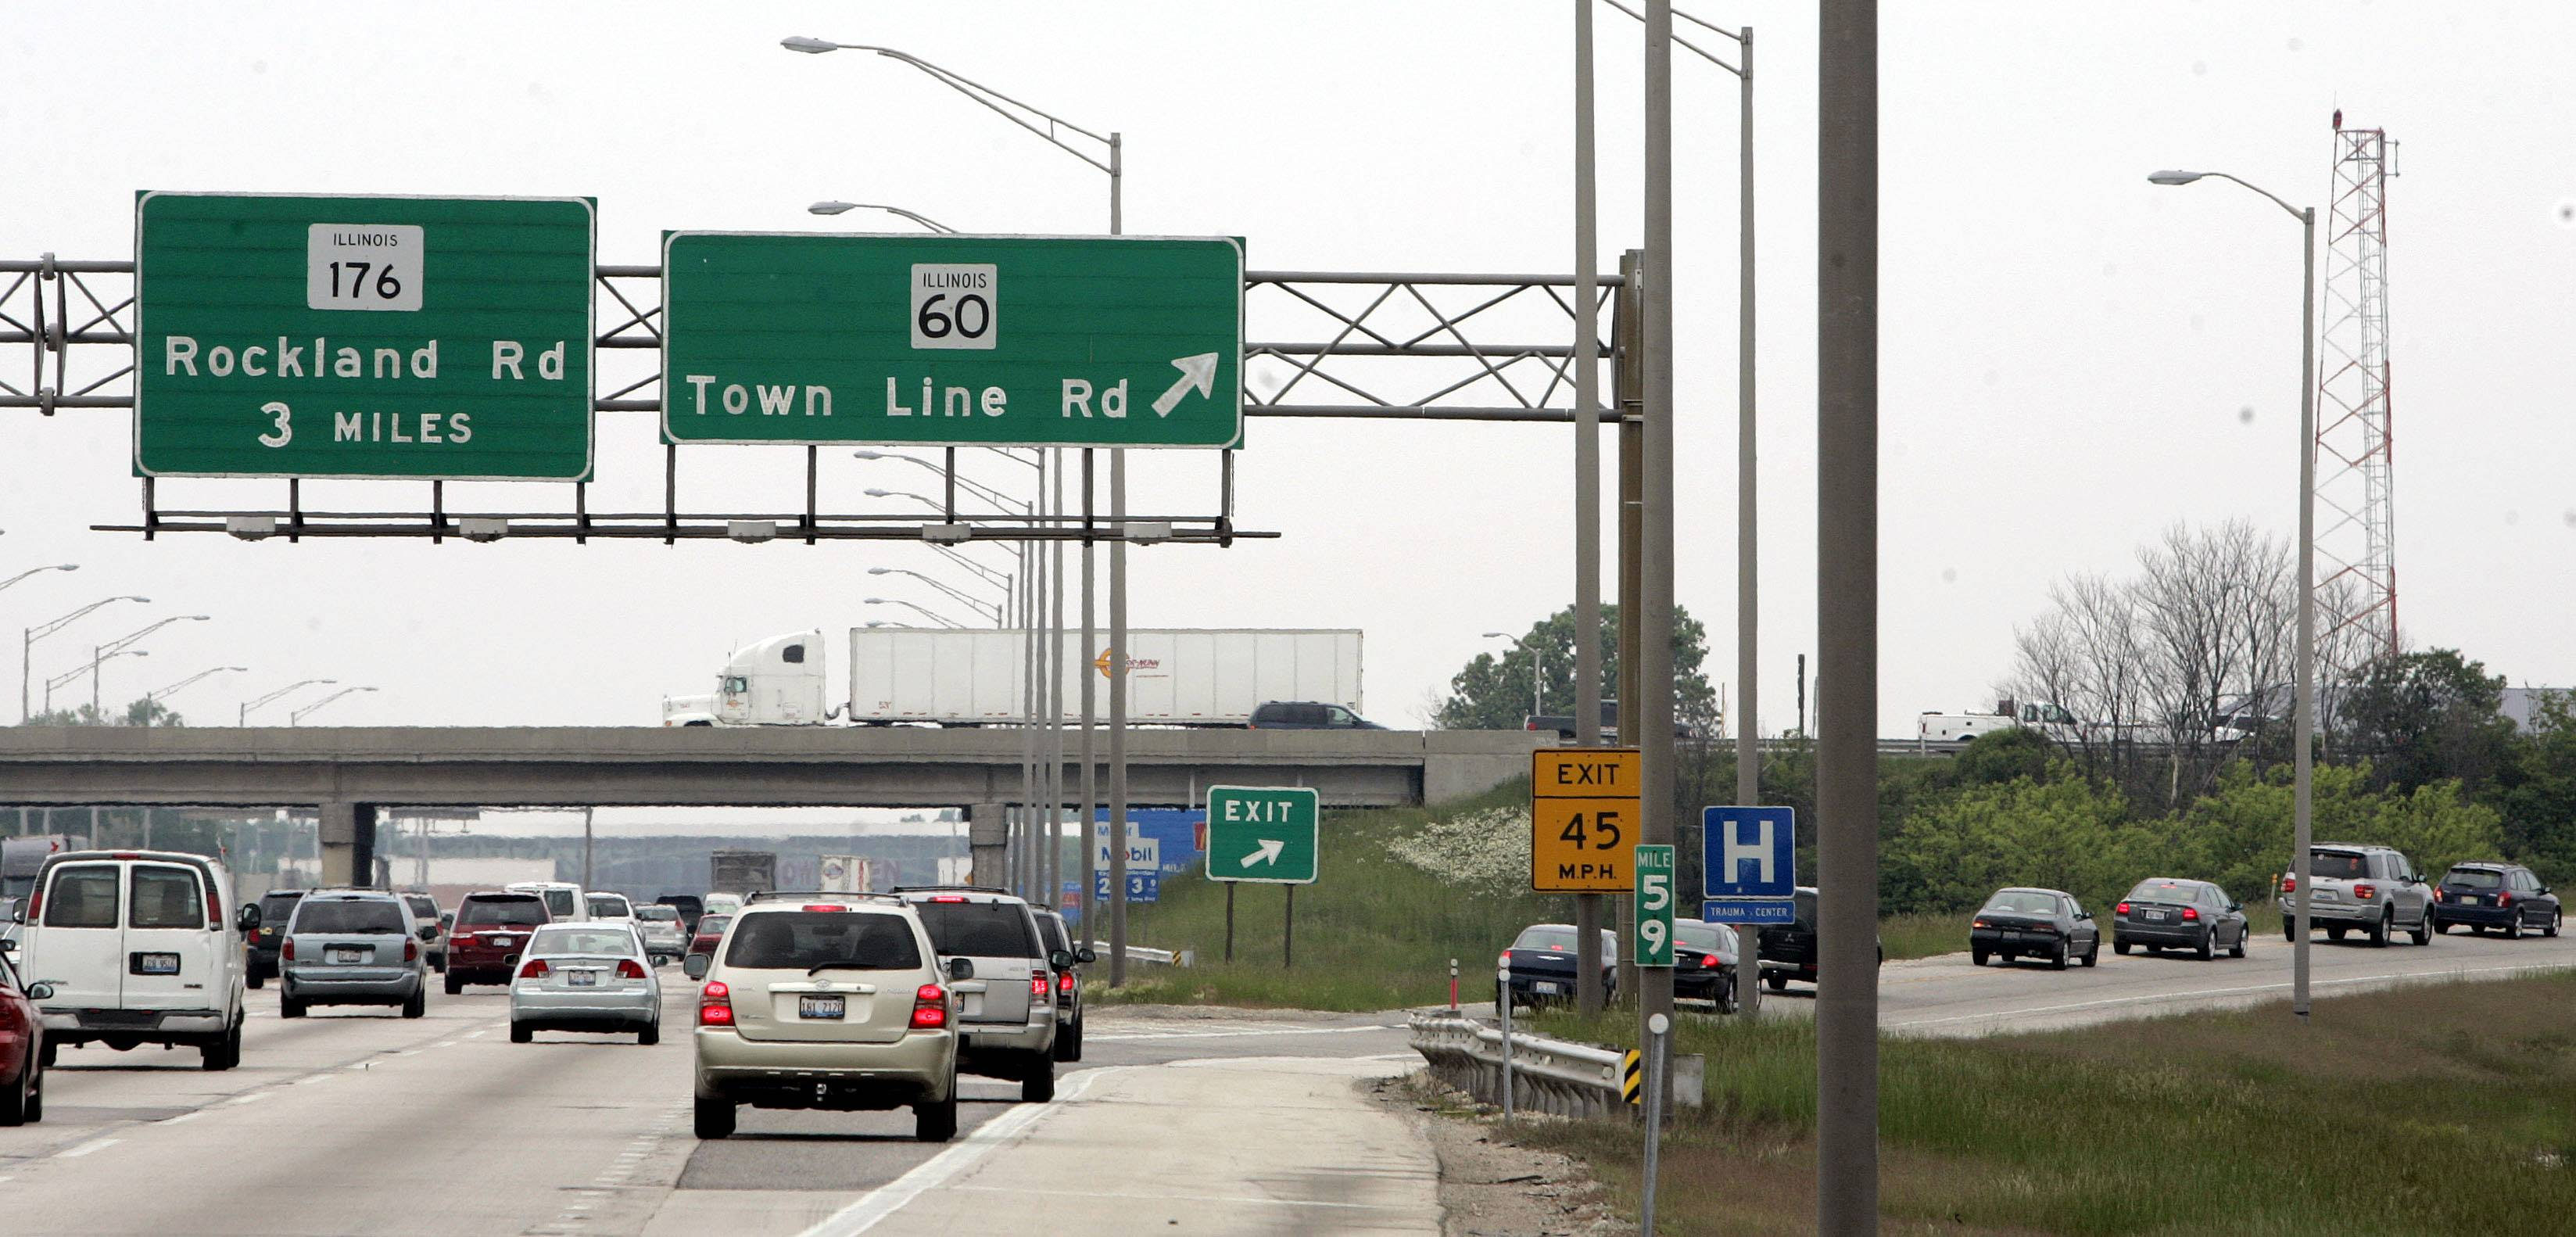 Motorists on the Illinois Tollway might one day be able to use a smartphone app to pay tolls automatically while driving.That's one of the technologies the agency wants to play with at a test site it plans to set up on a section of the Tri-State Tollway.